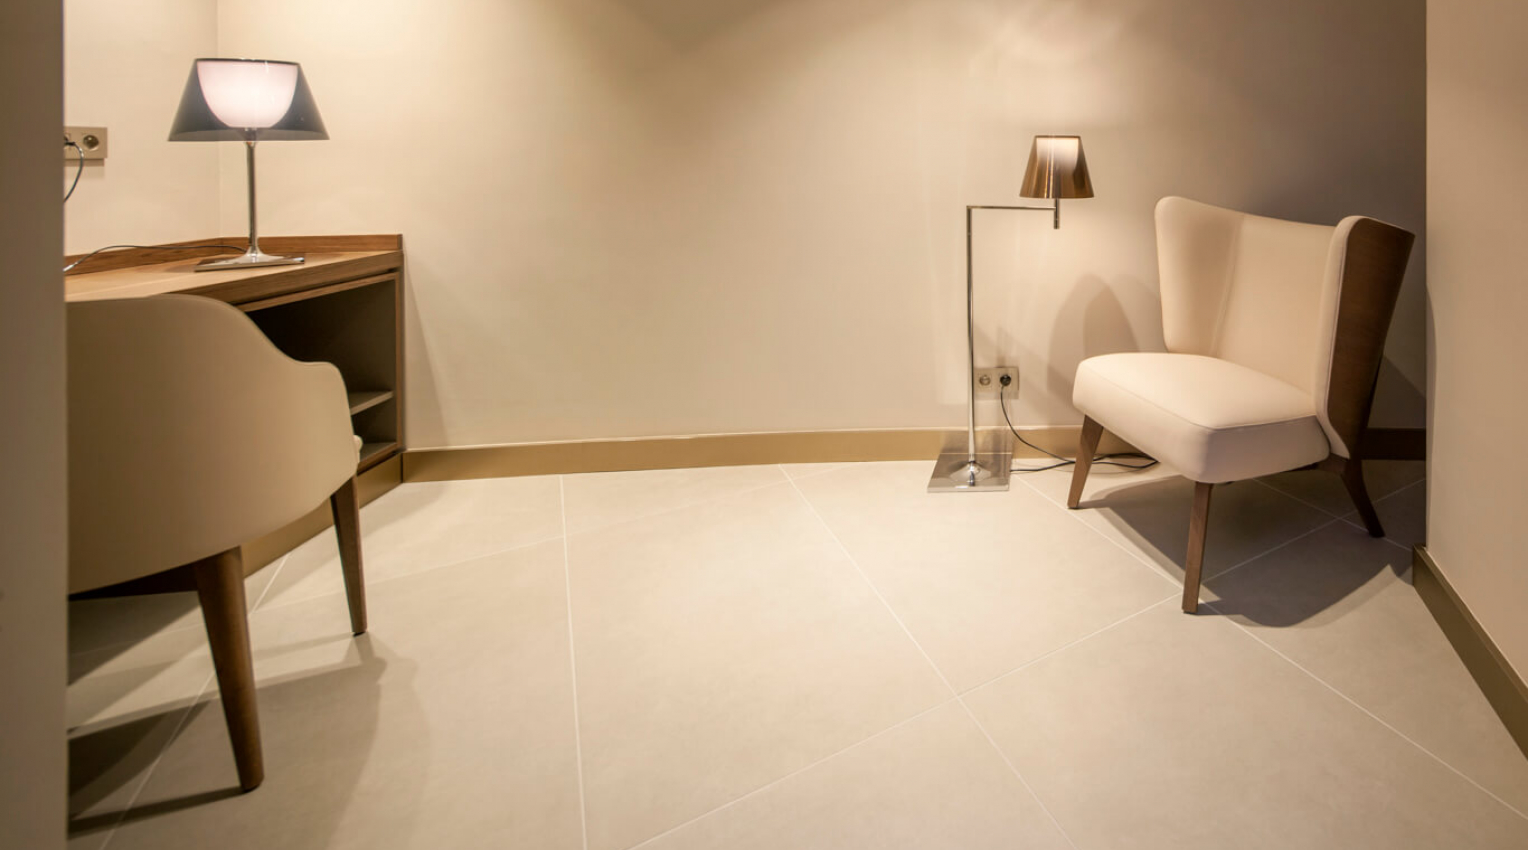 Cement Effect Porcelain Tiles Radisson Blu Hotel